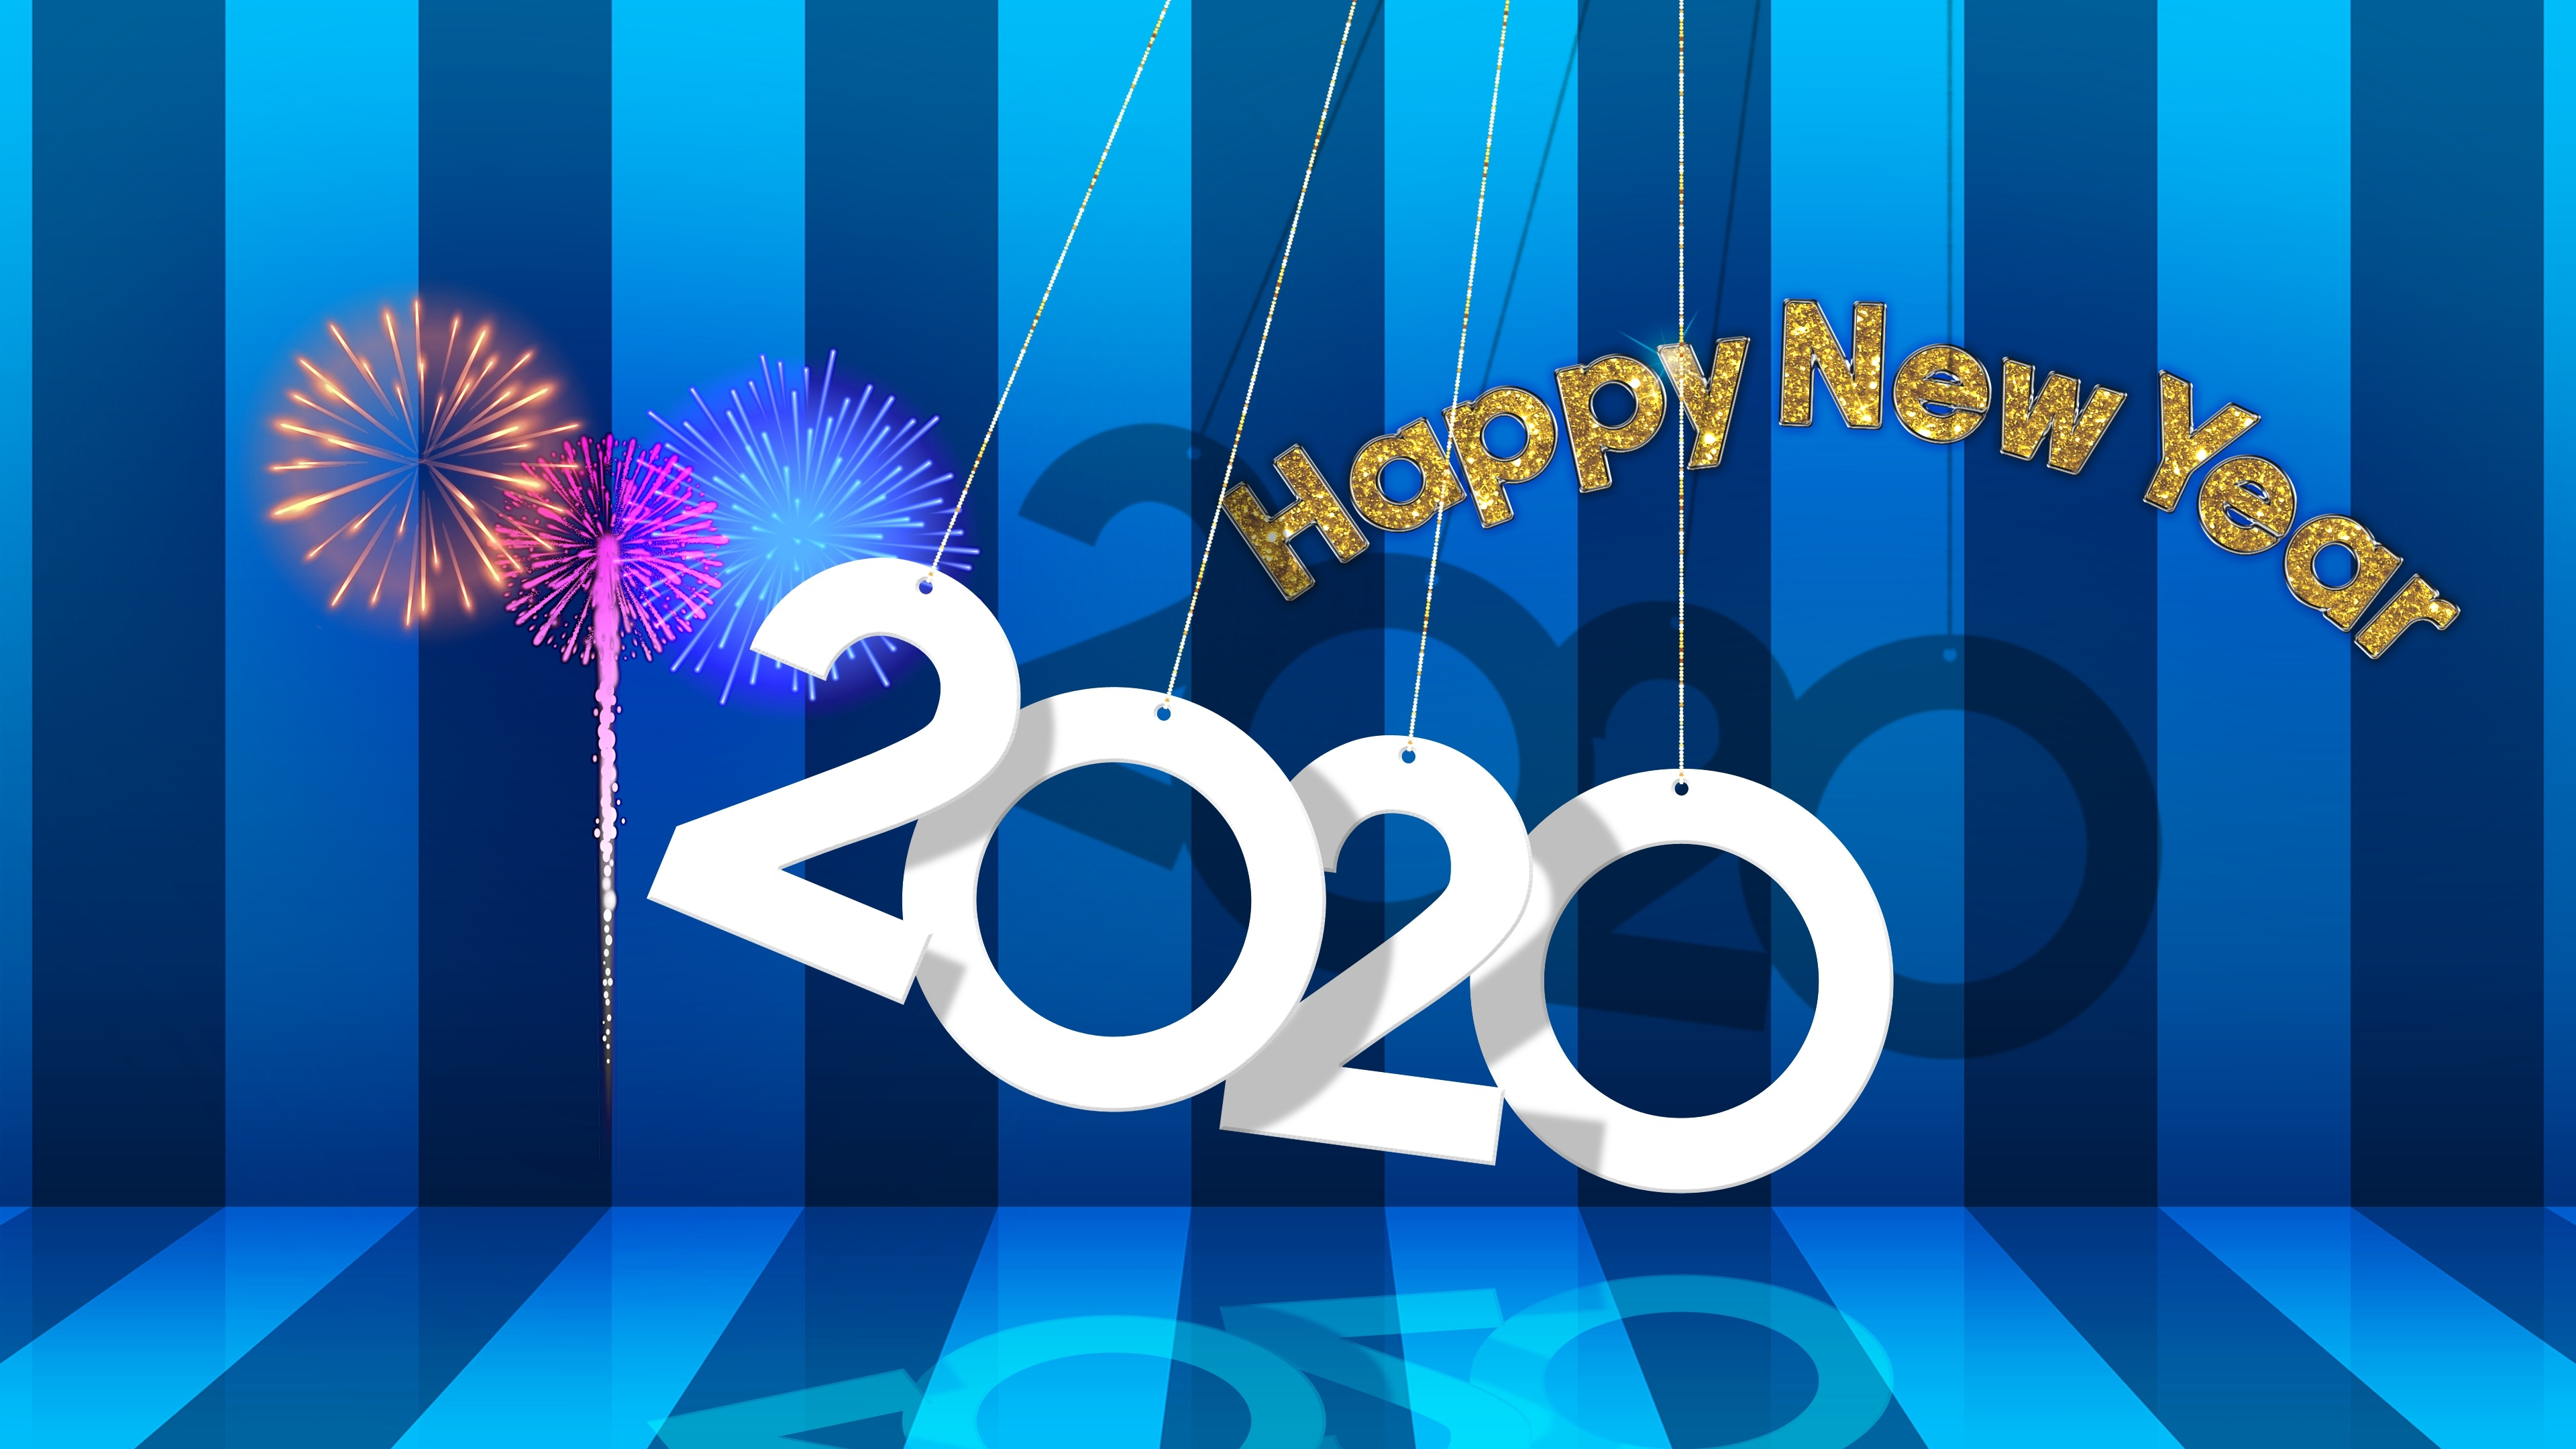 1080x1920 New Year 2020 Iphone 7 6s 6 Plus and Pixel XL One 3840x2160